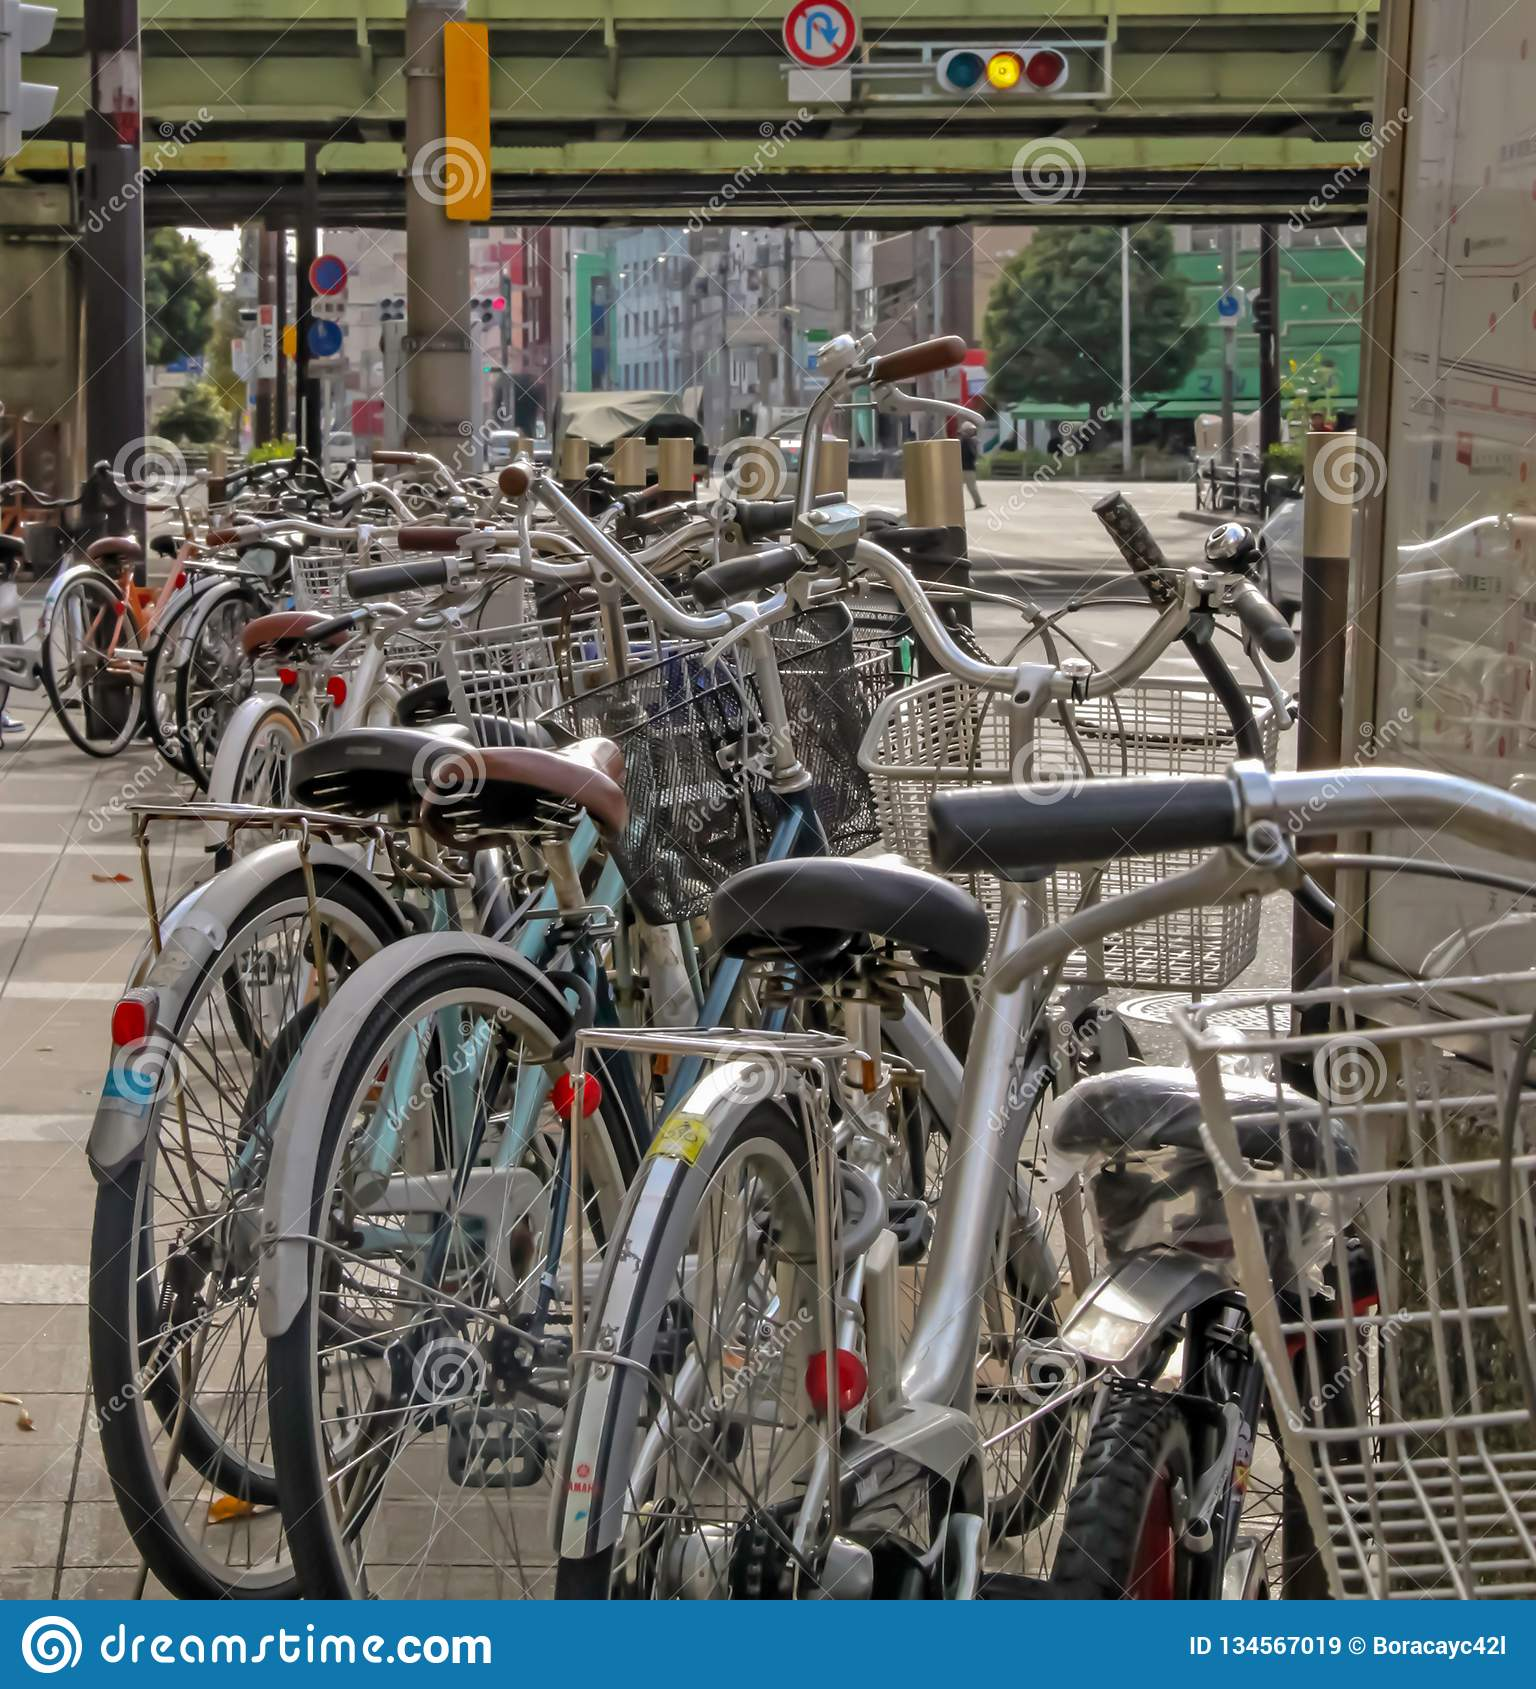 Bicycles parked along side of pathway